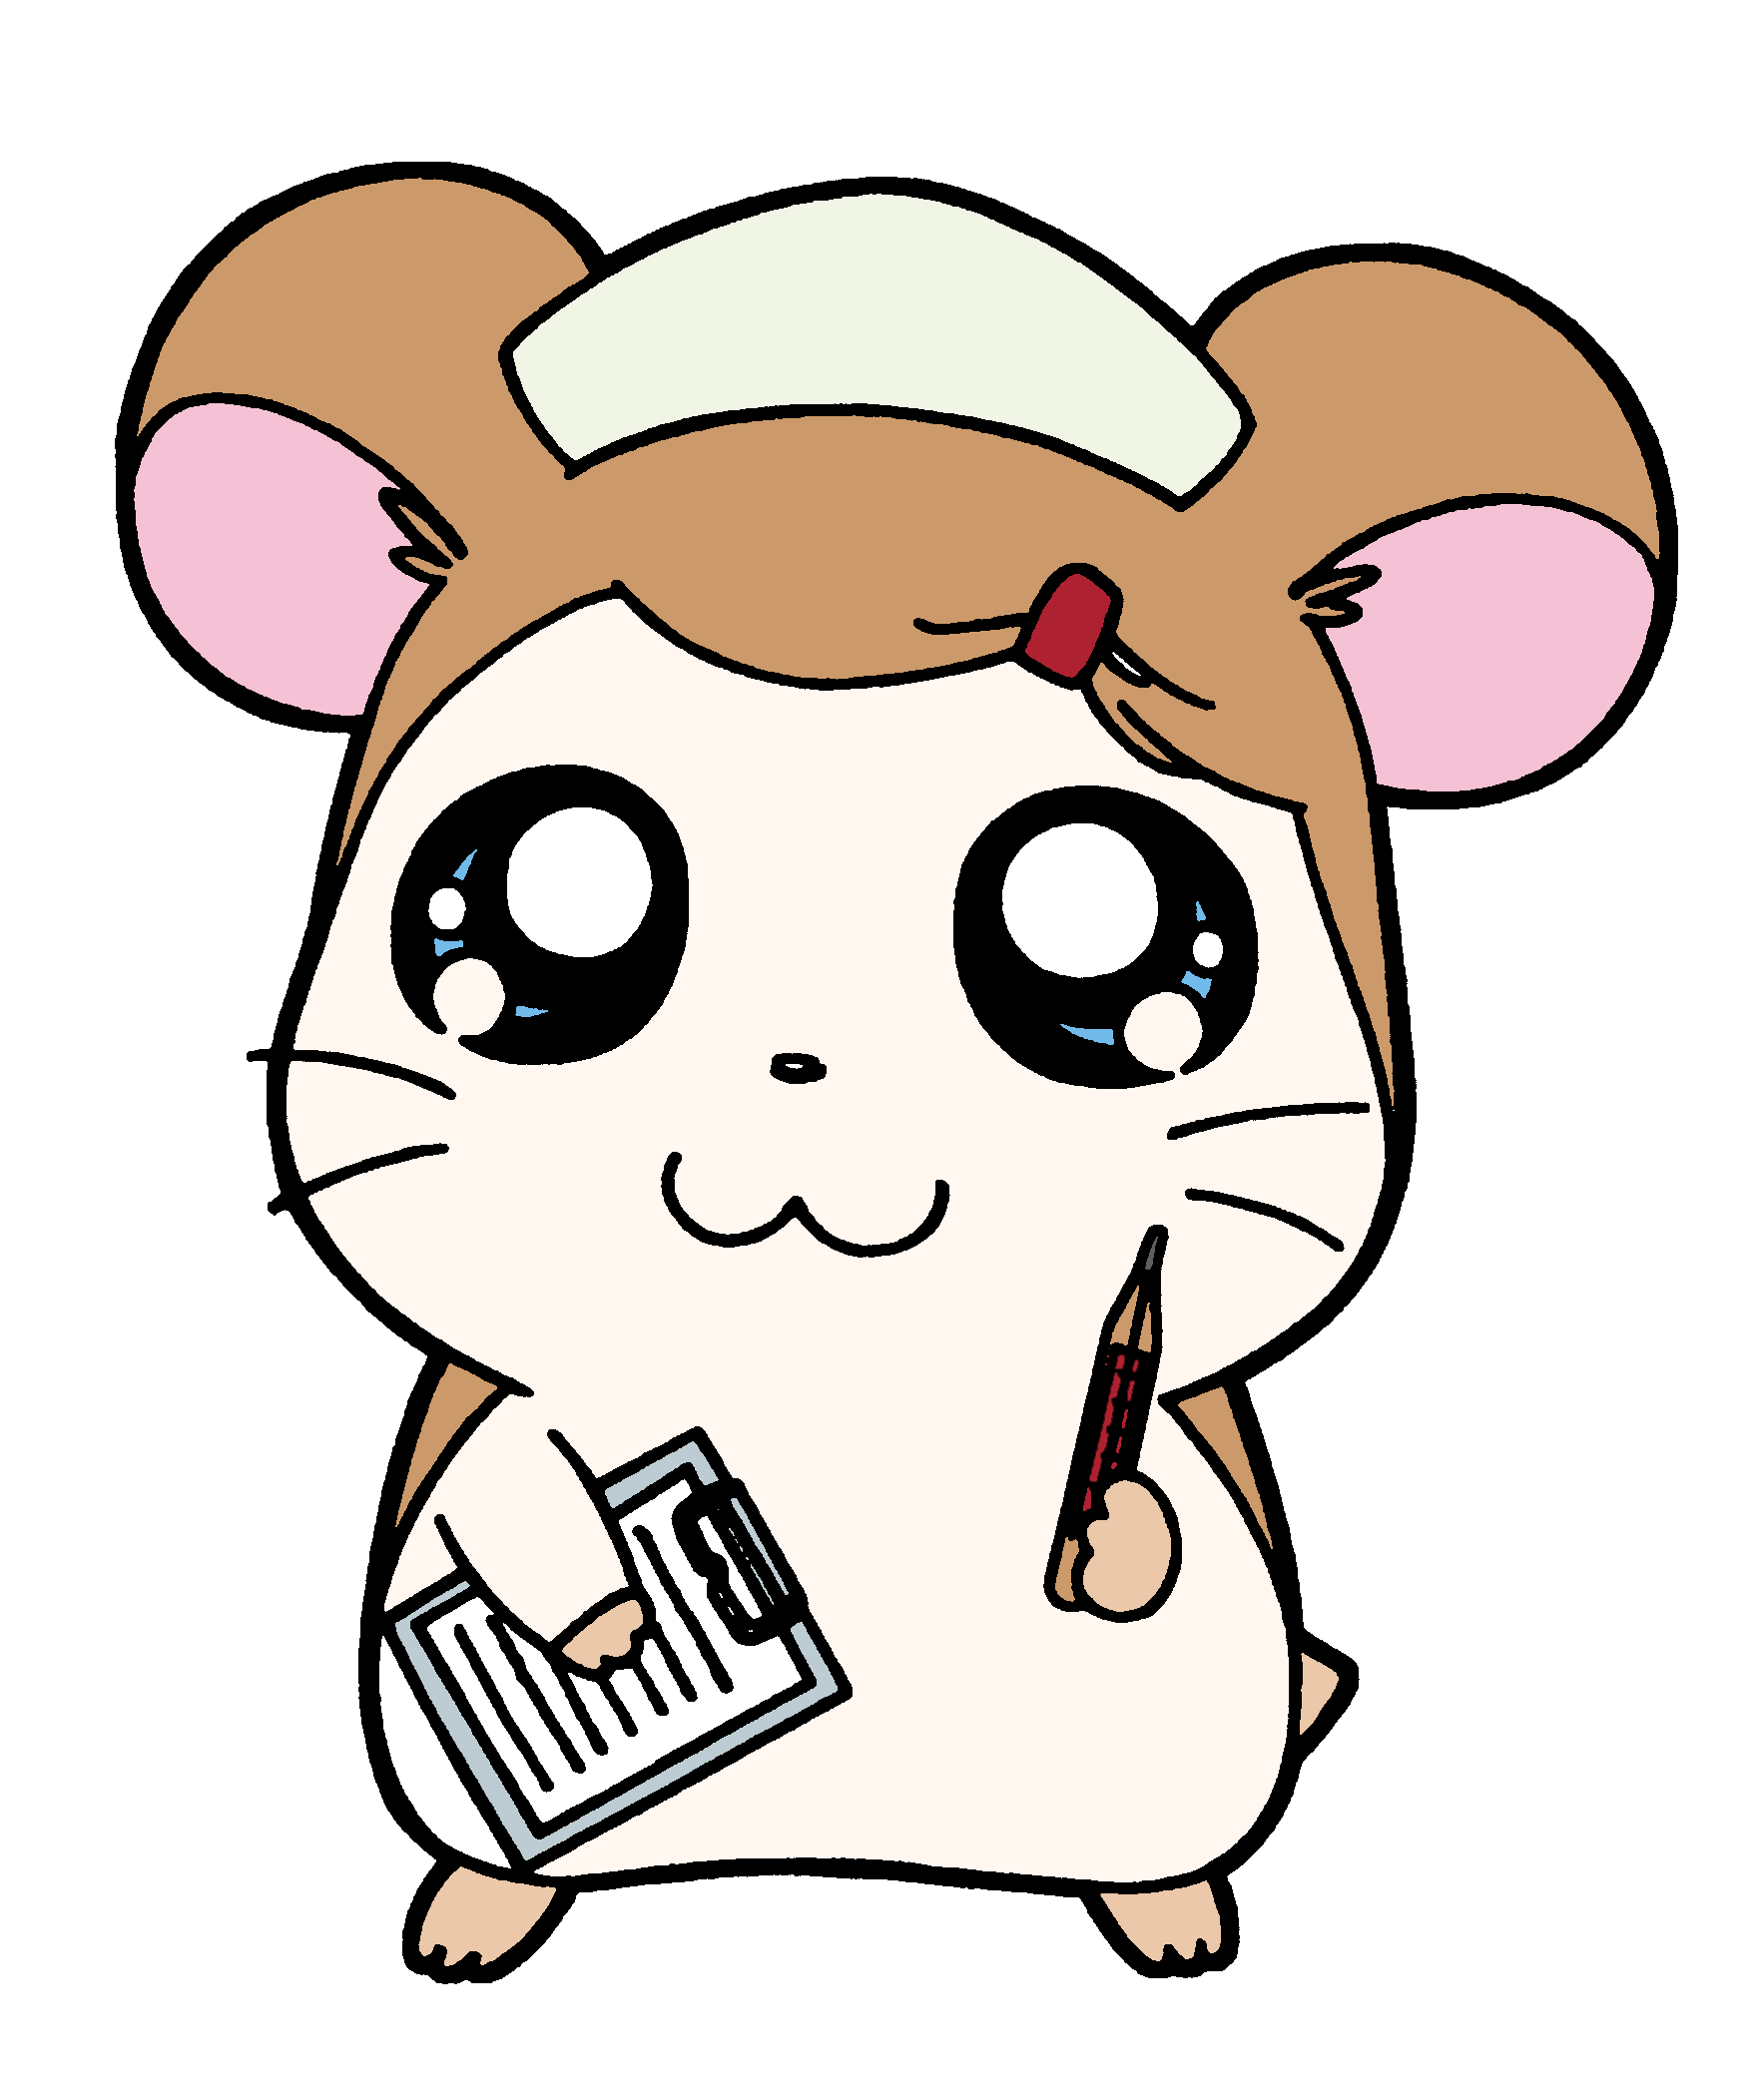 clip art library download Flora the hamtaro wiki. Hamster clipart sick